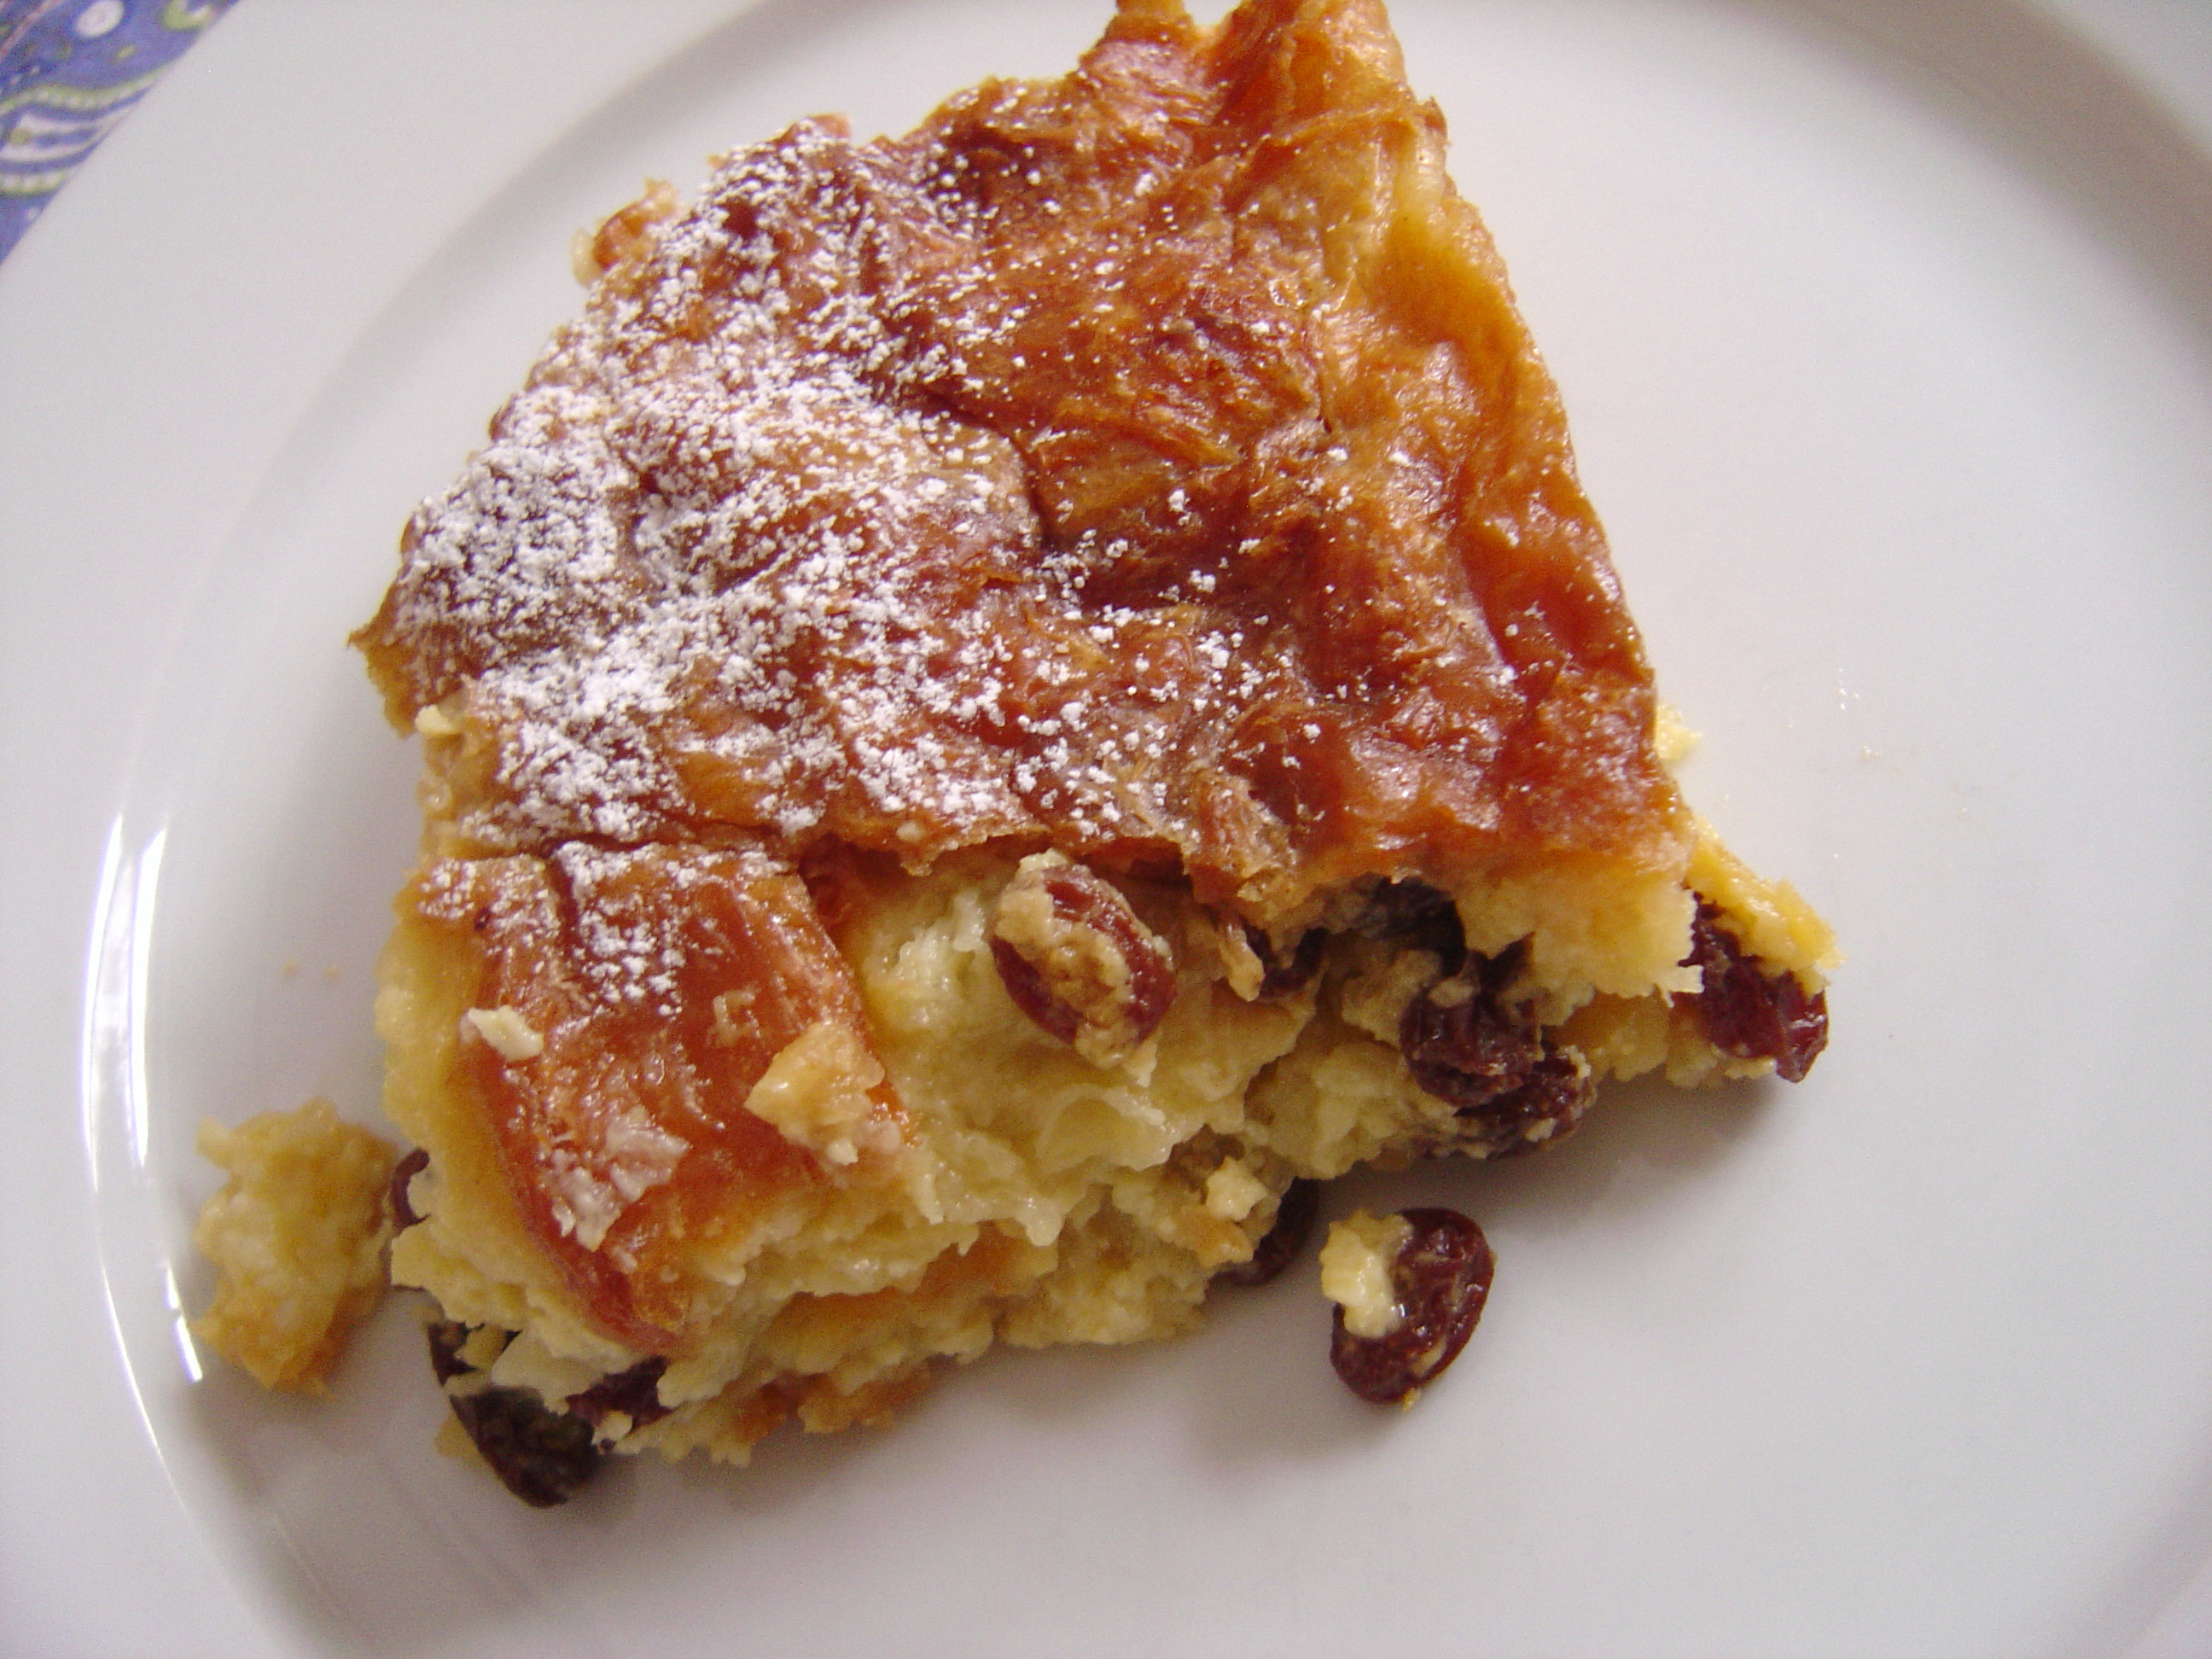 Barefoot Contessa Chocolate Bread Pudding Recipe